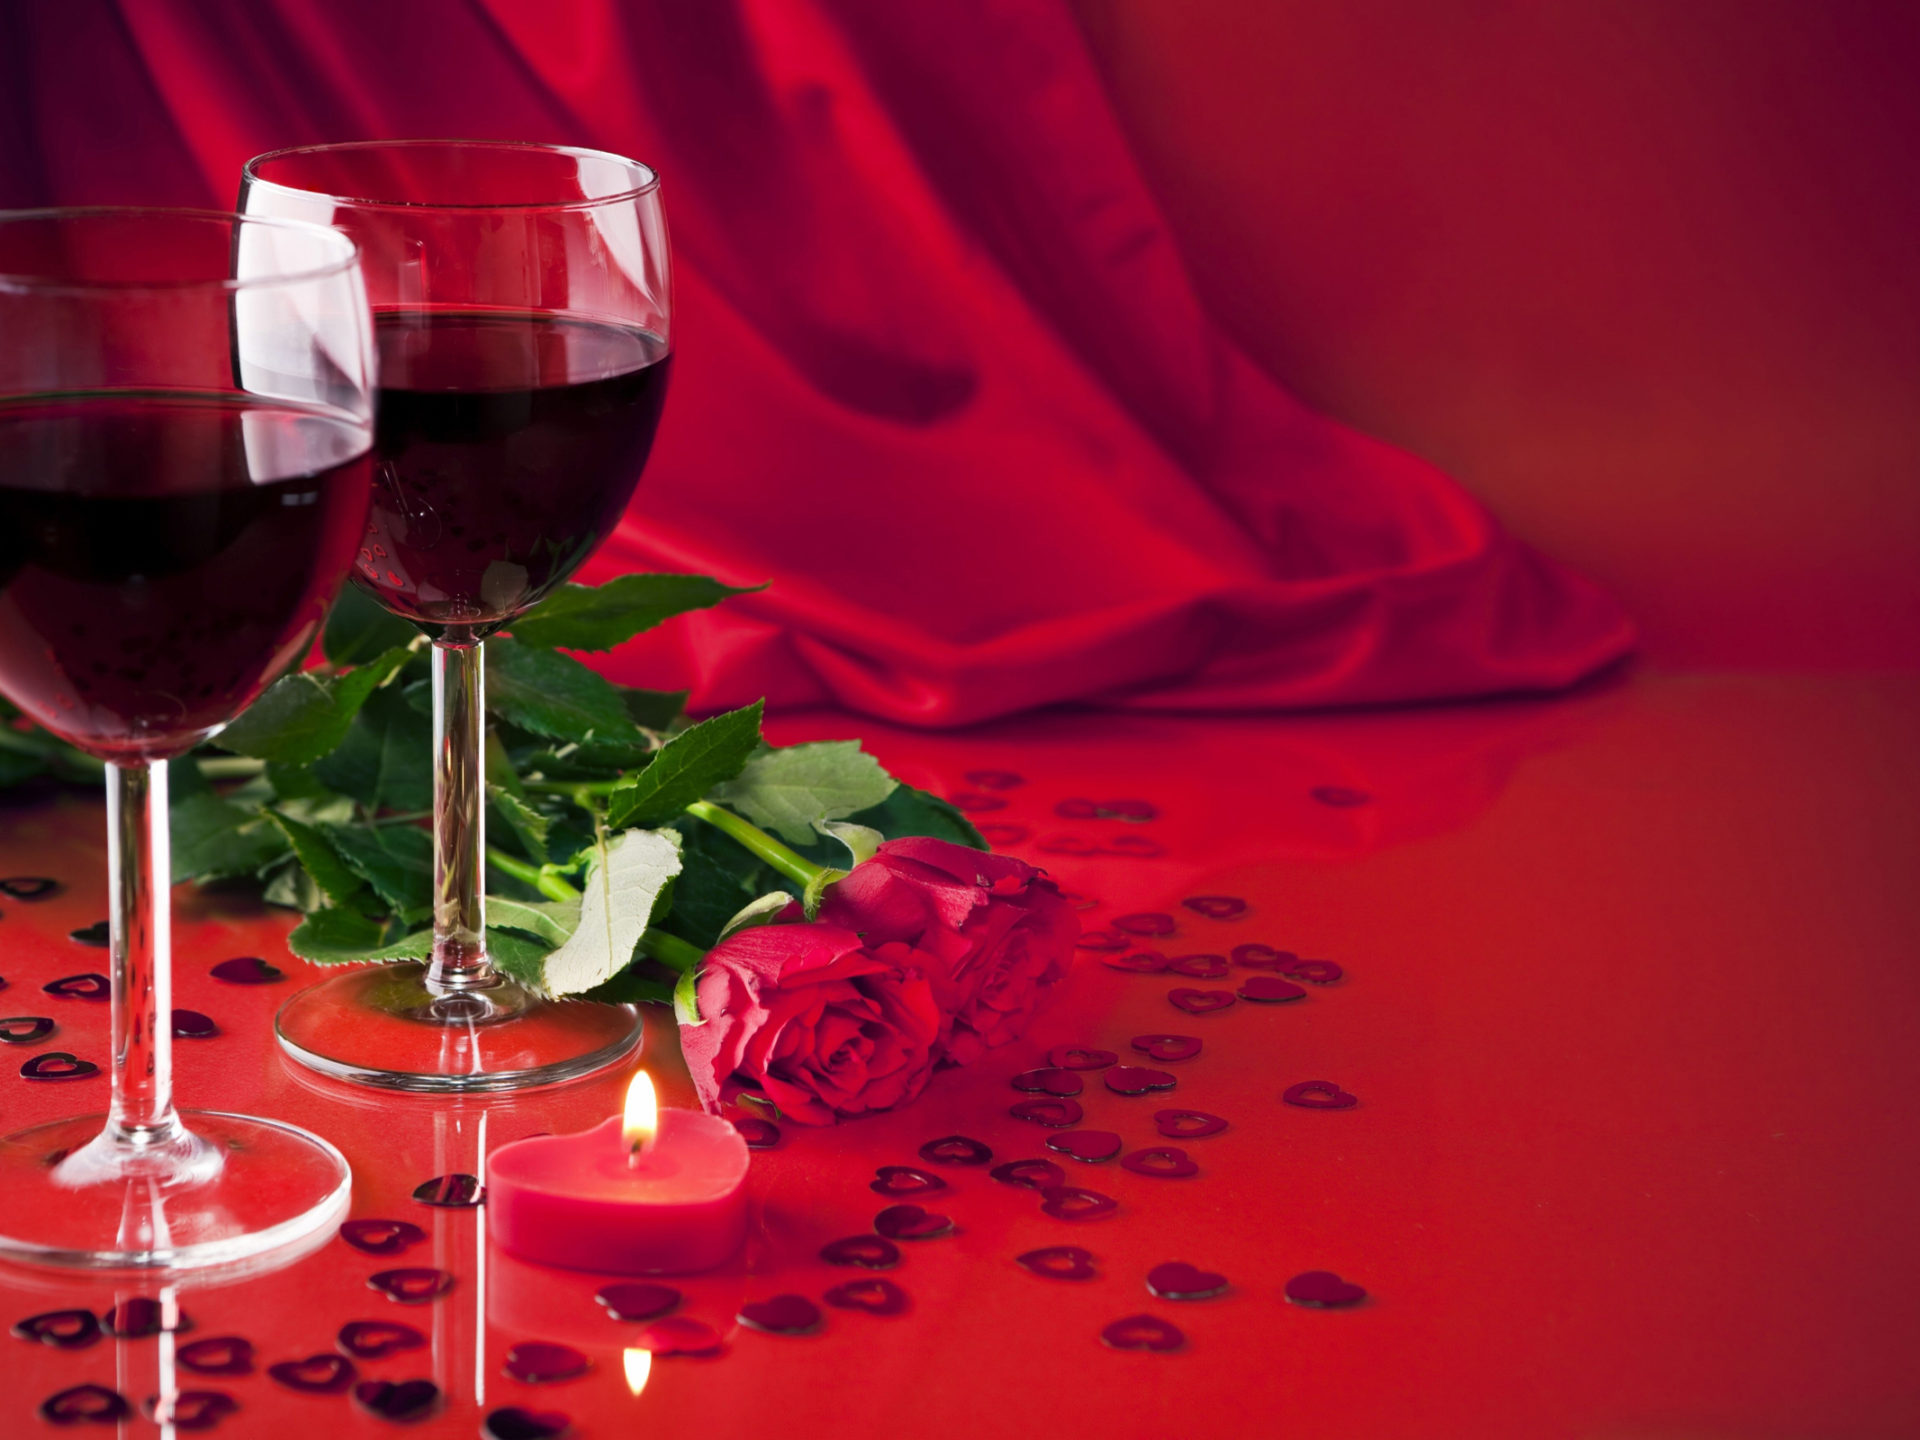 Glasses Of Wine Red Roses Light Candle 001